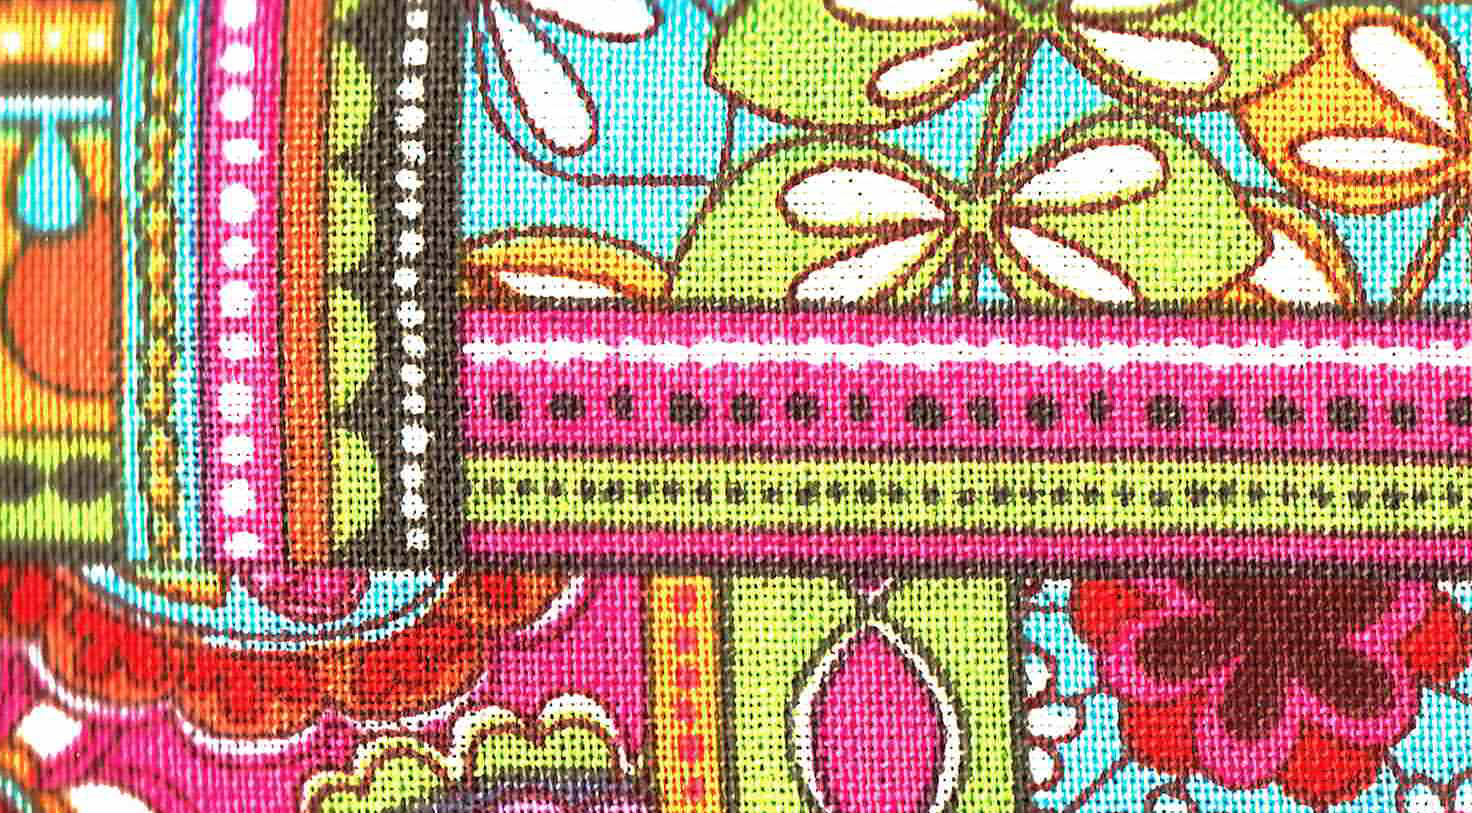 Cooling Tie - 492 Shades Of India